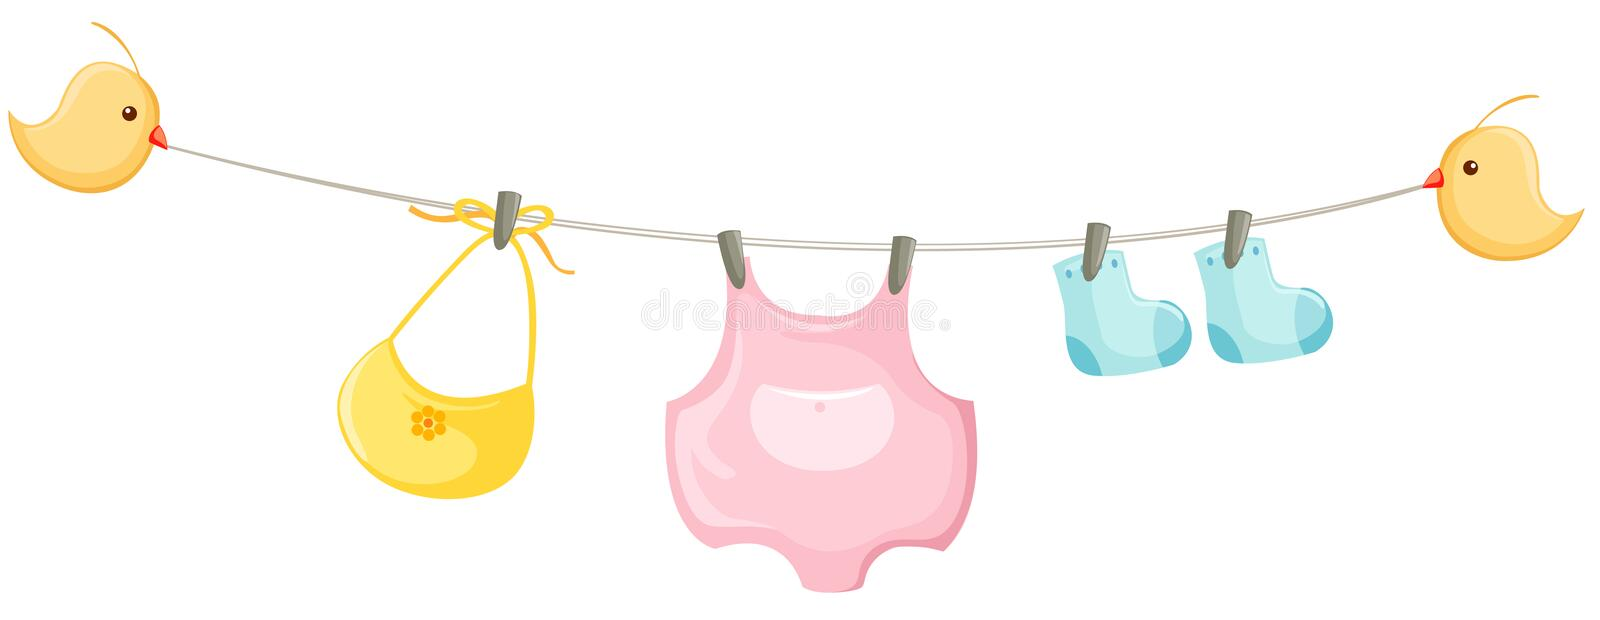 baby clothes on a clothesline royalty free illustration